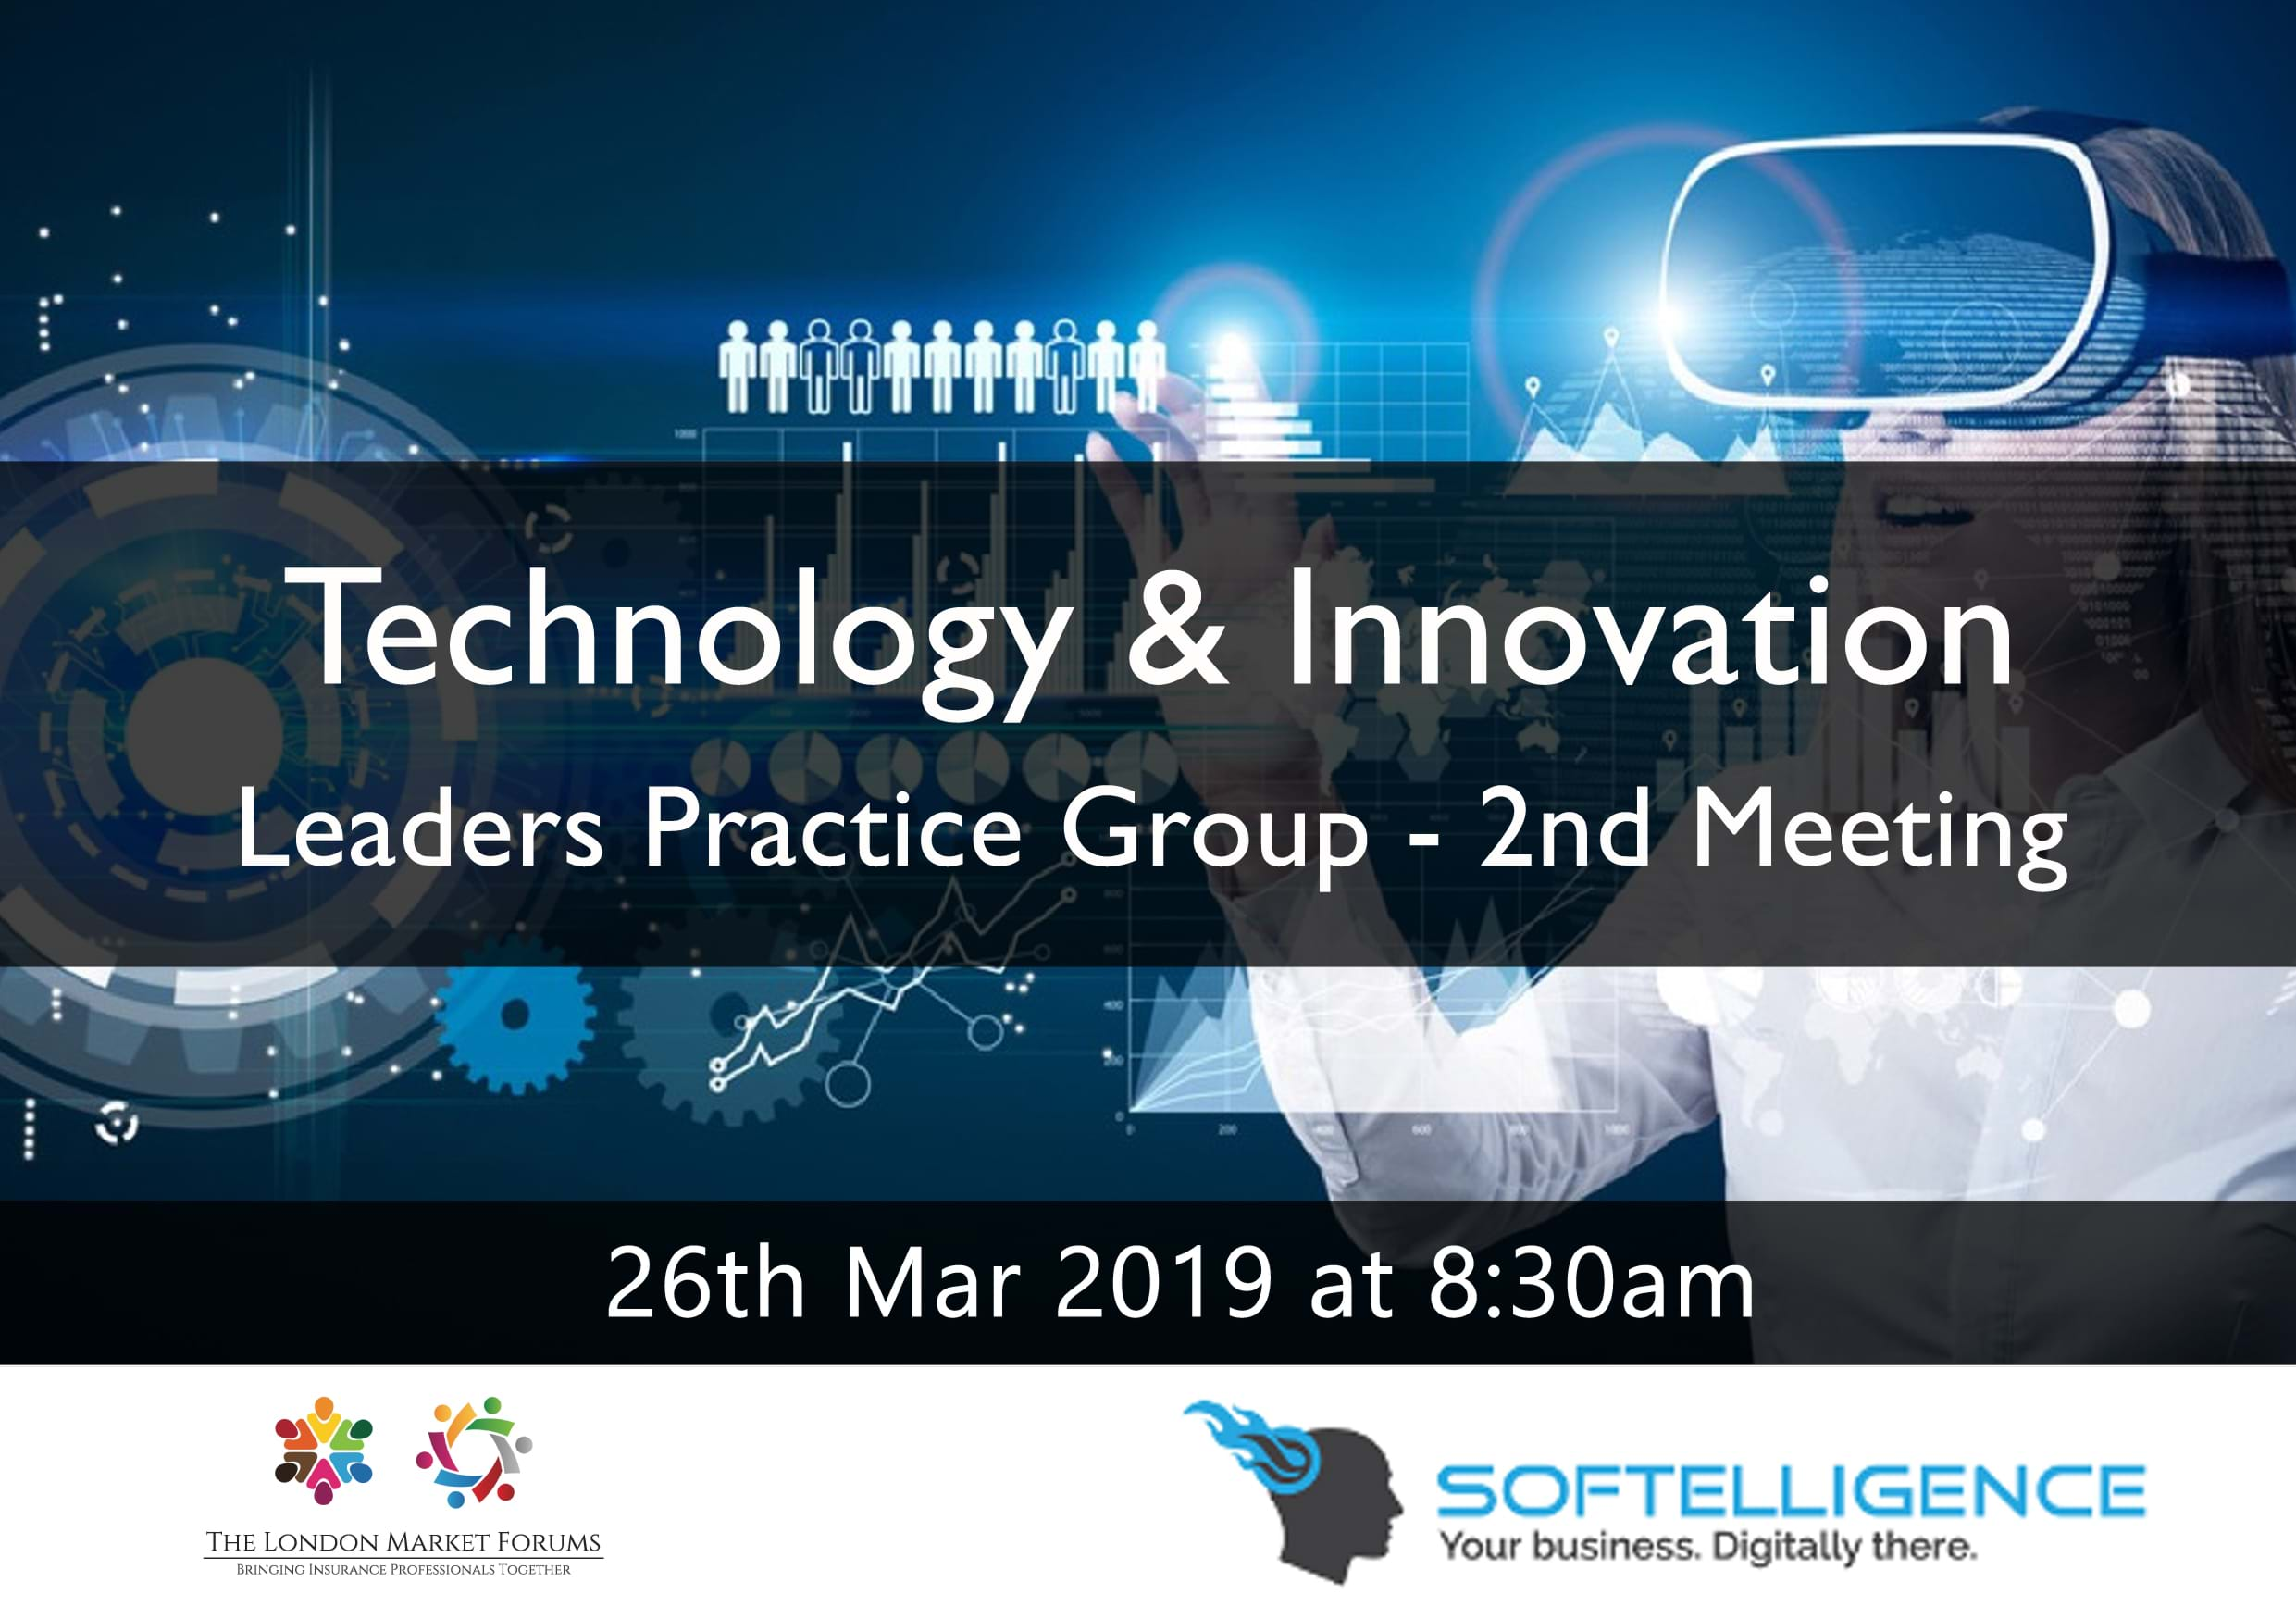 Technology & Innovation Leaders Practice Group - 26th March 2019